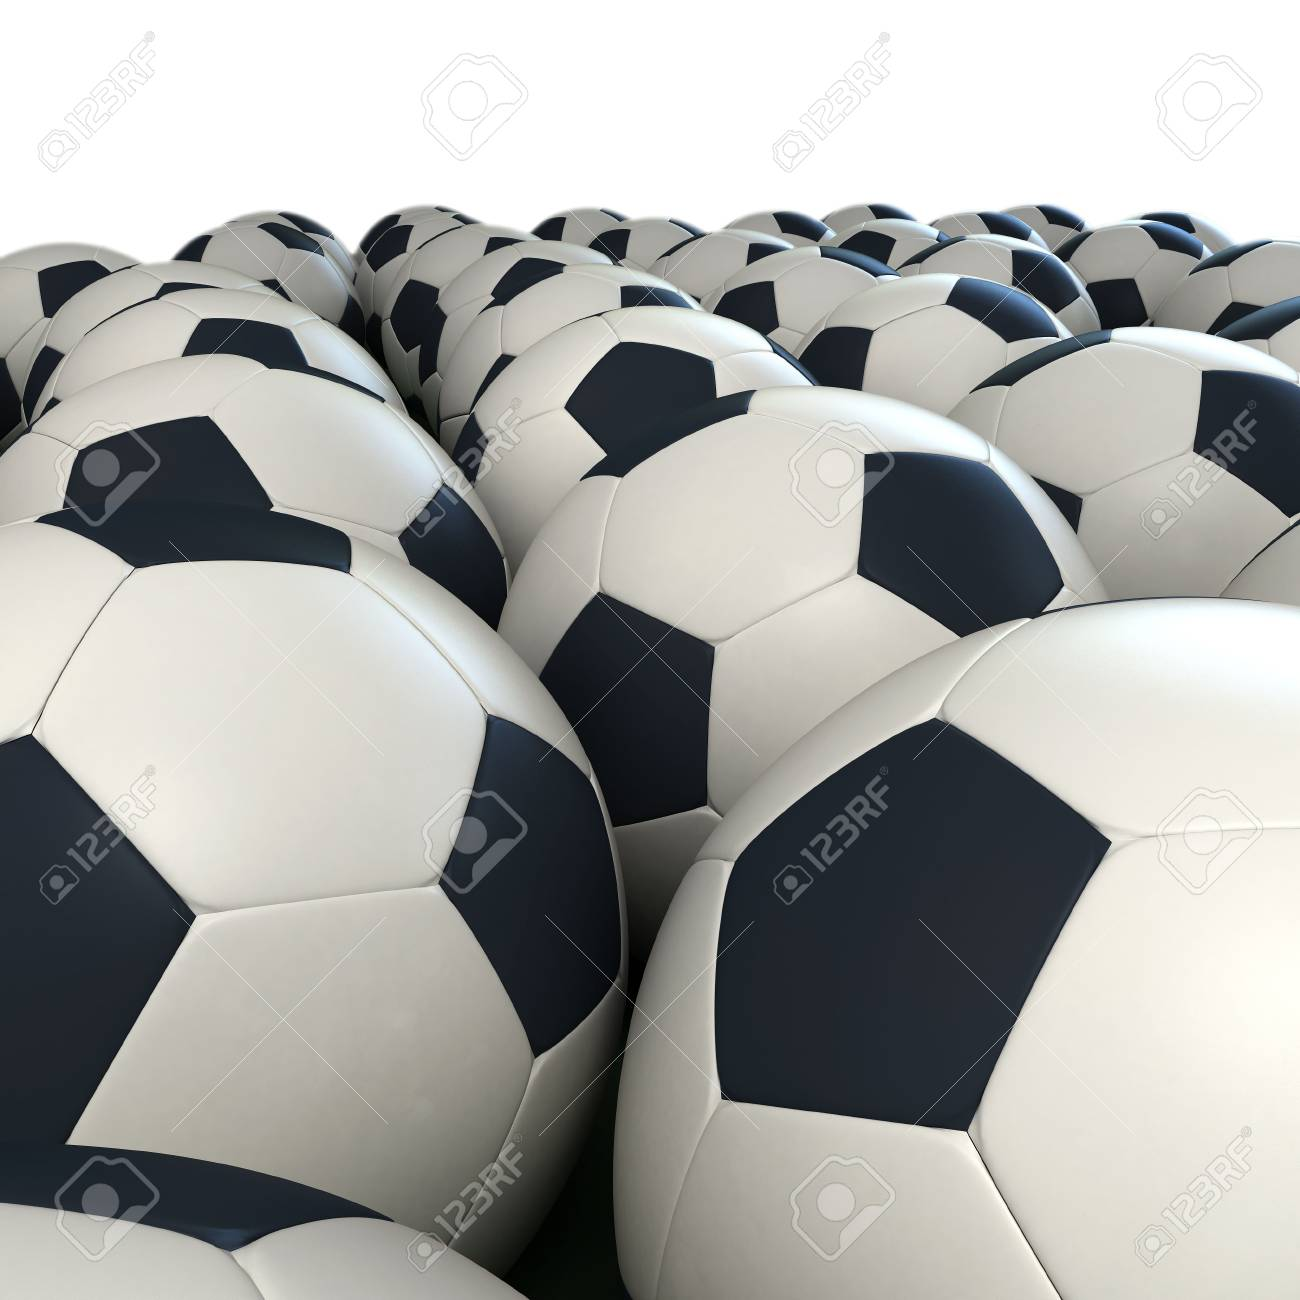 Arrangement of soccer balls against a white background Stock Photo - 2595432